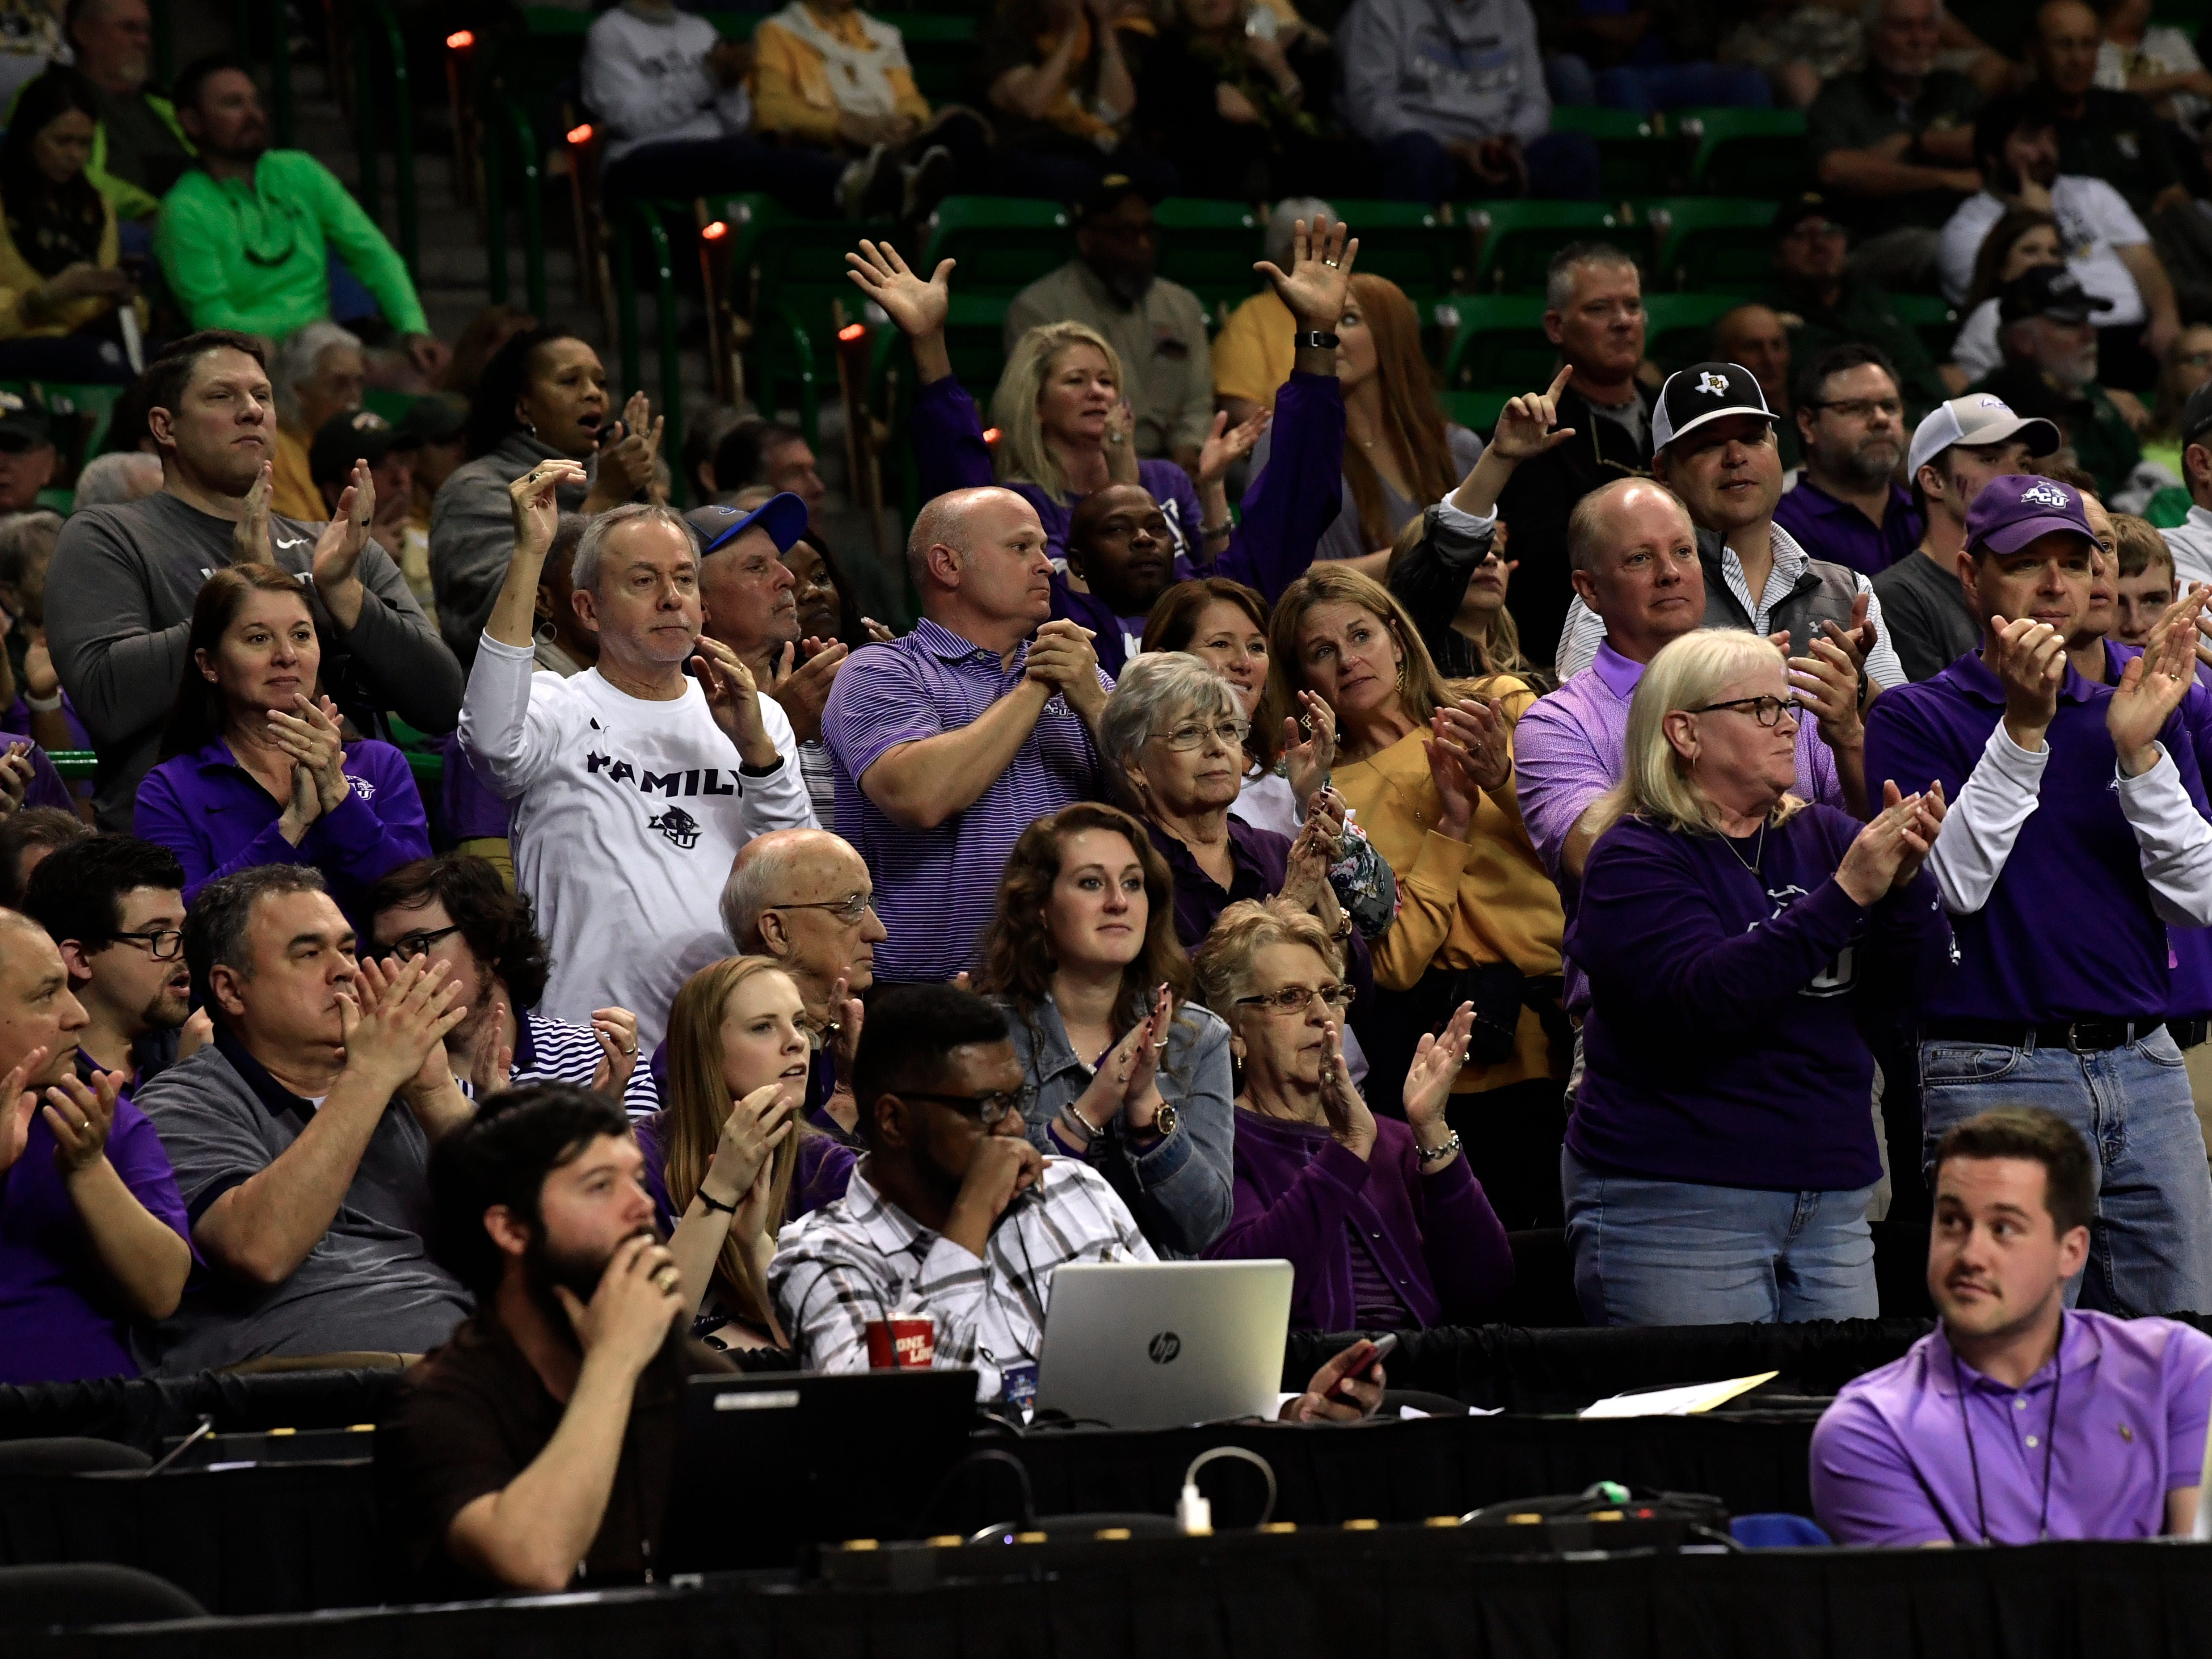 Abilene Christian University fans cheer the Lady Wildcats during Saturday's NCAA Tournament women's round 1 basketball game March 23, 2019. Baylor defeated Abilene Christian University, 95-38.